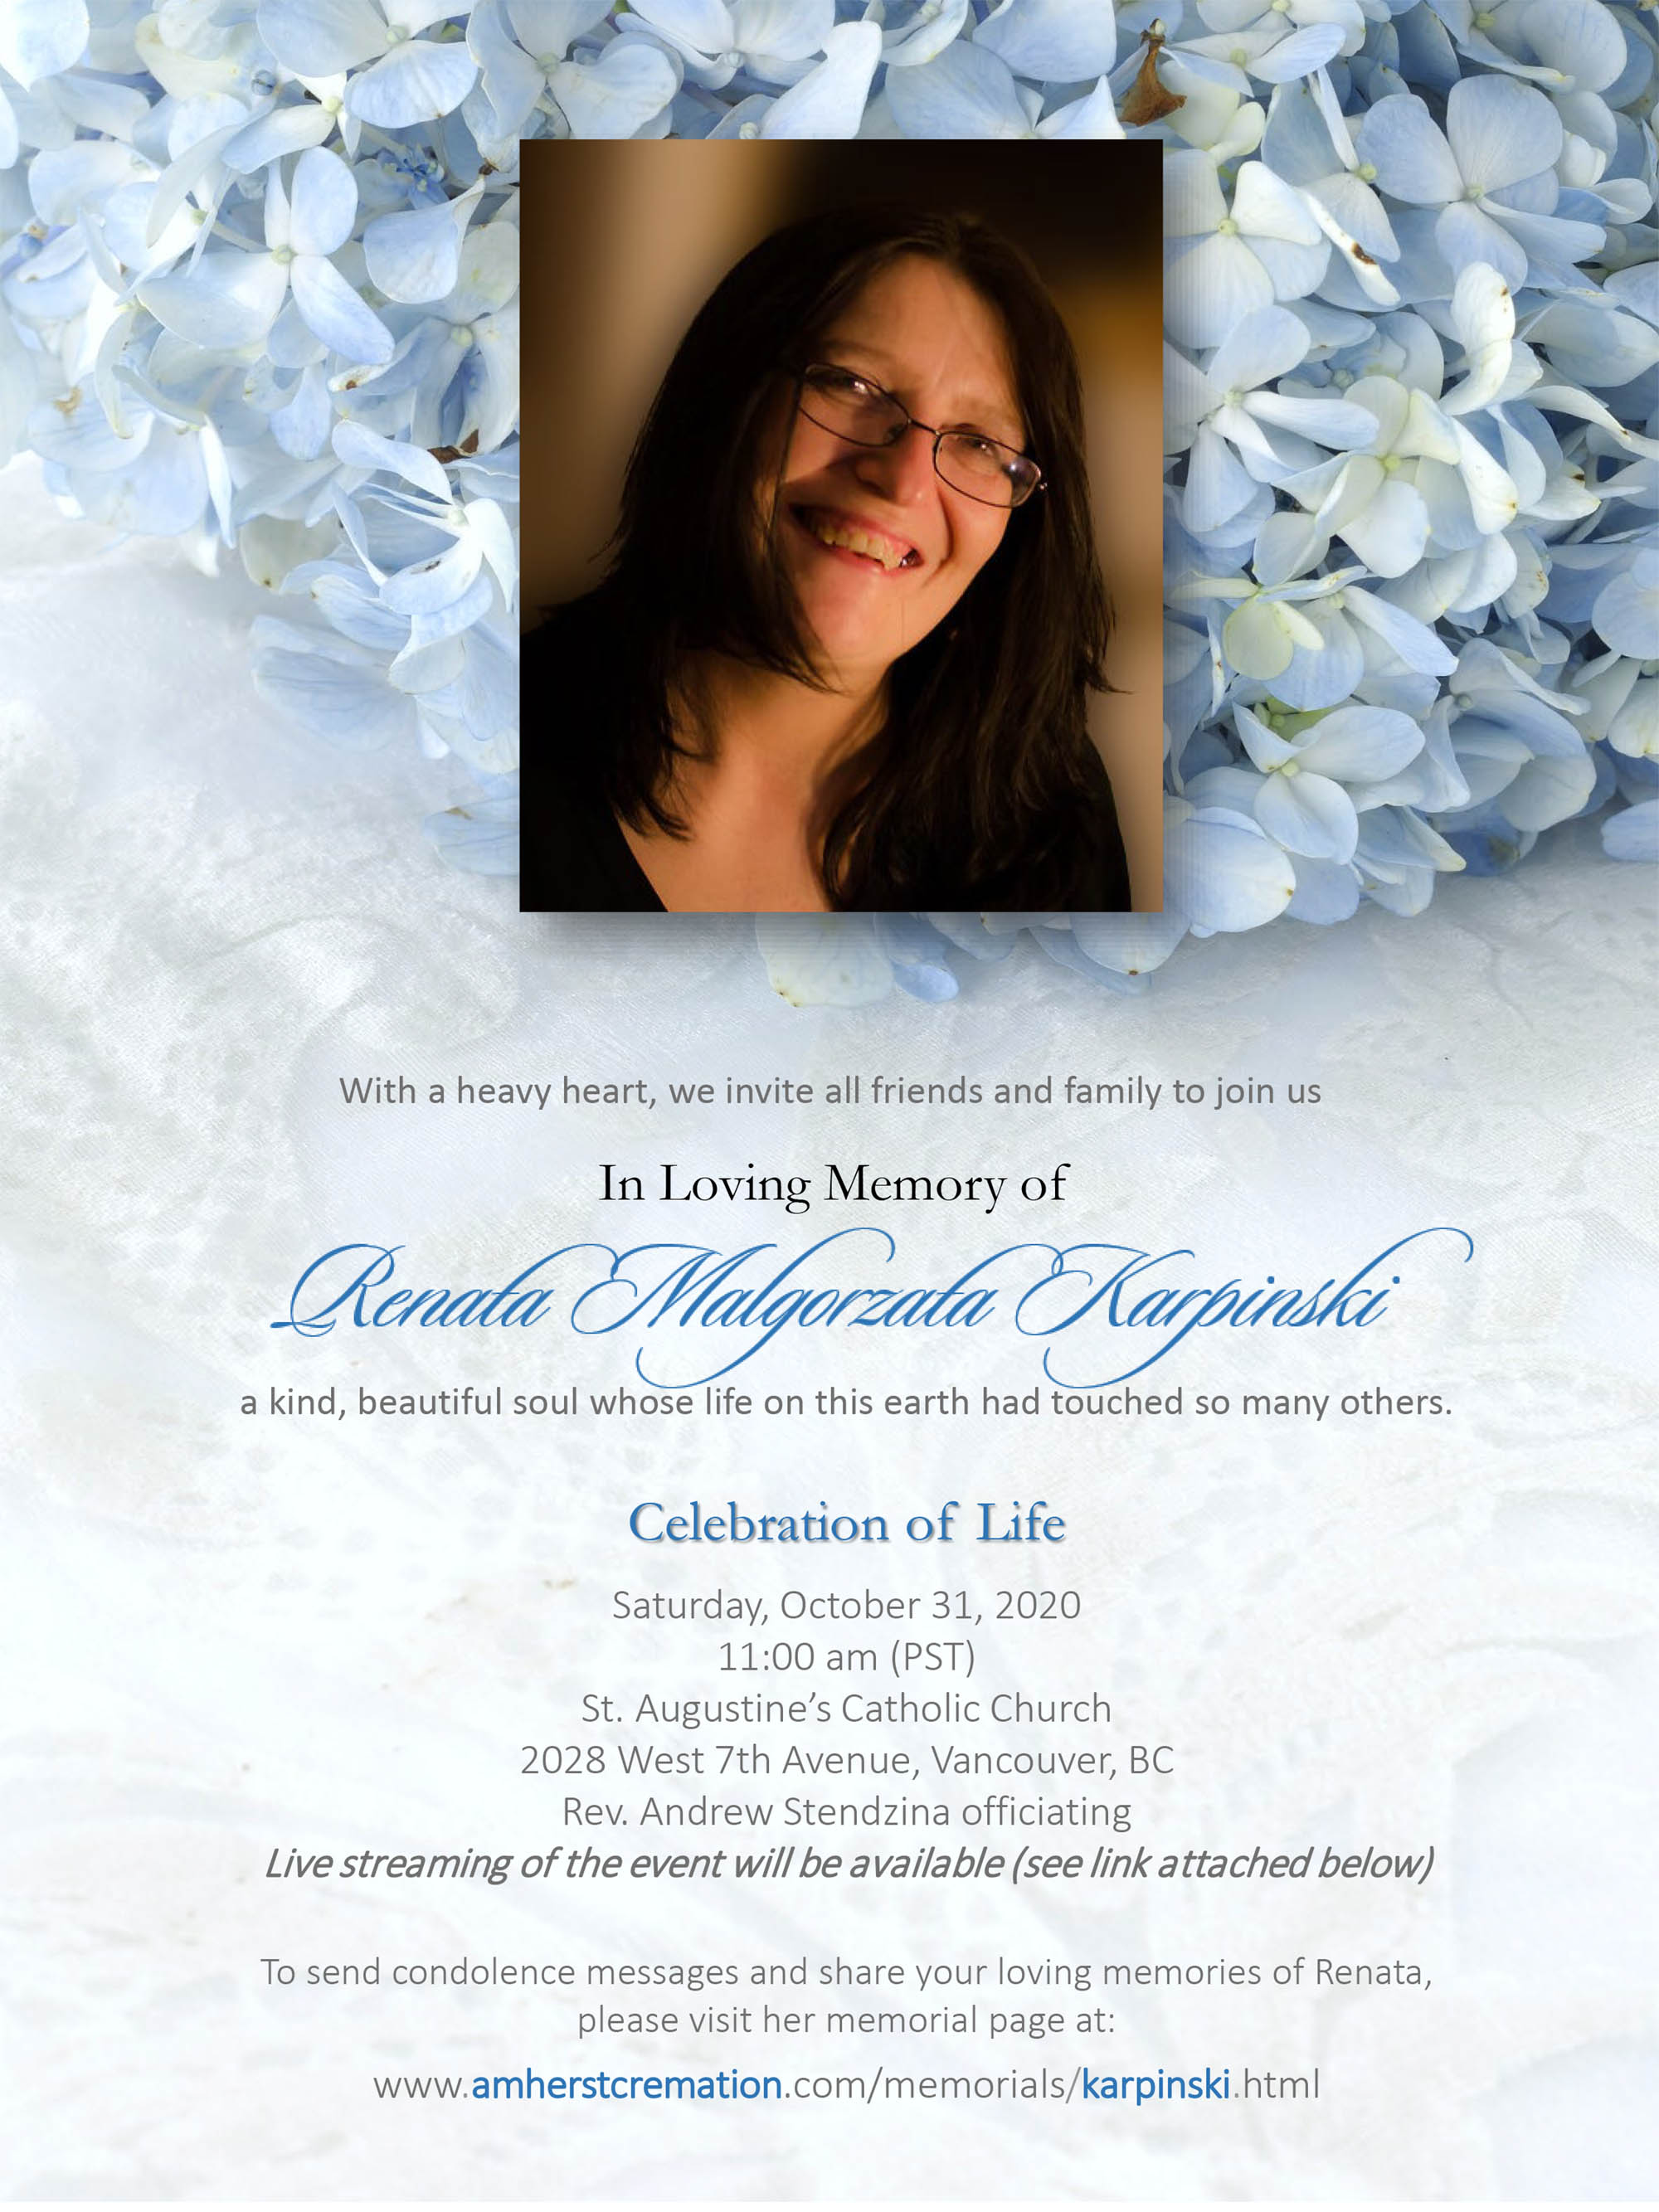 Celebration of Life of Renata Karpinski